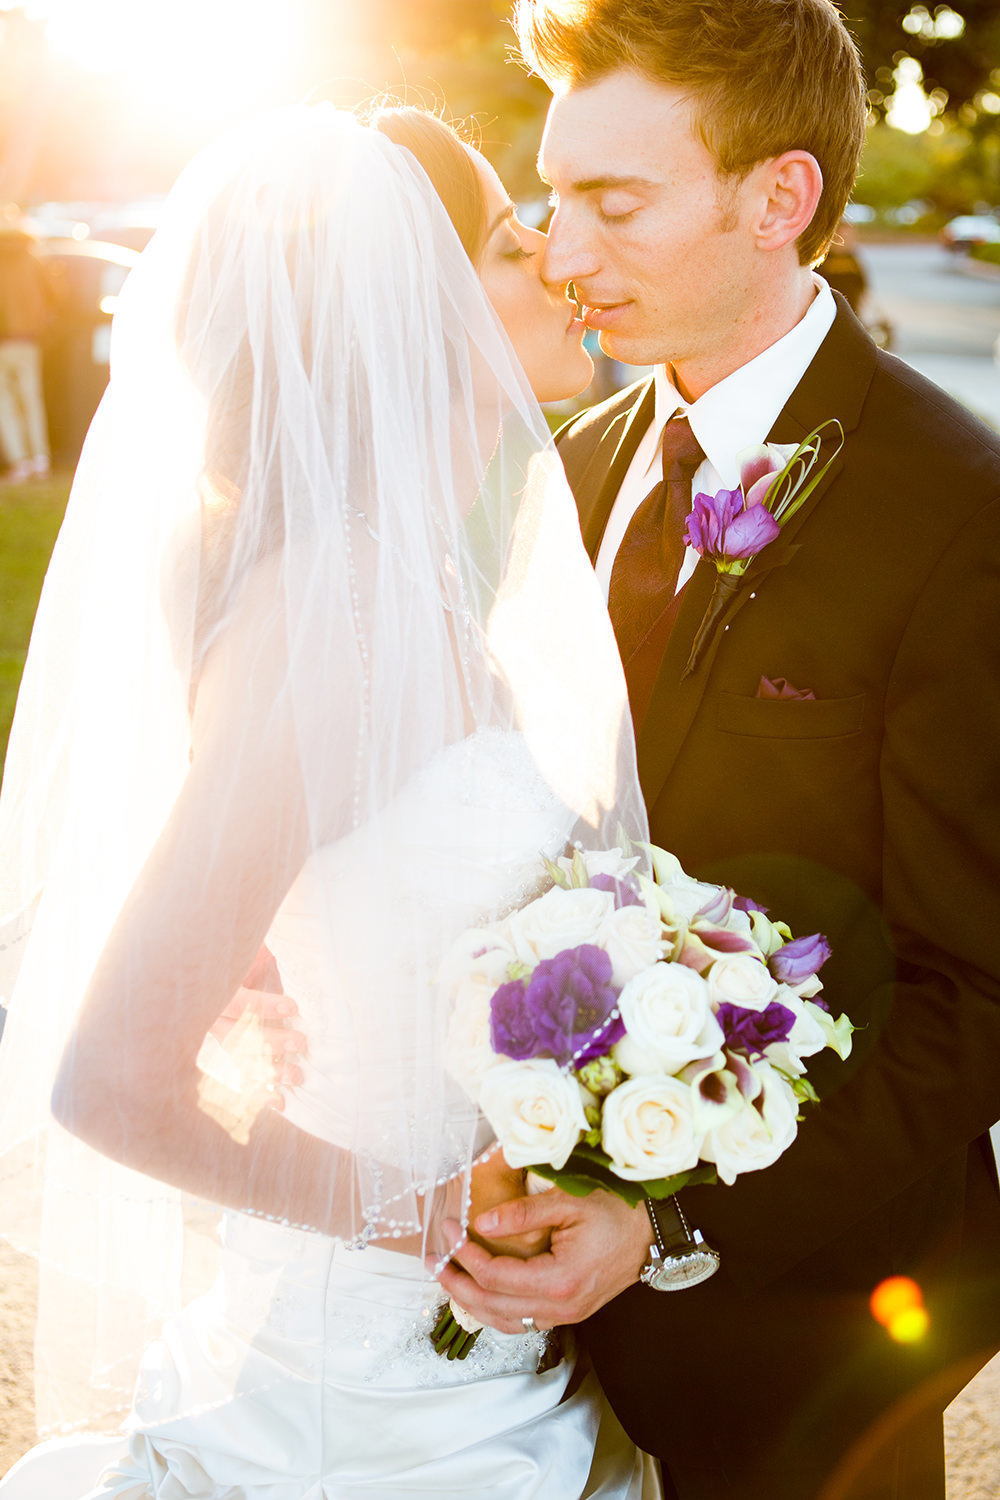 Romantic couples portrait with a bright lens flare